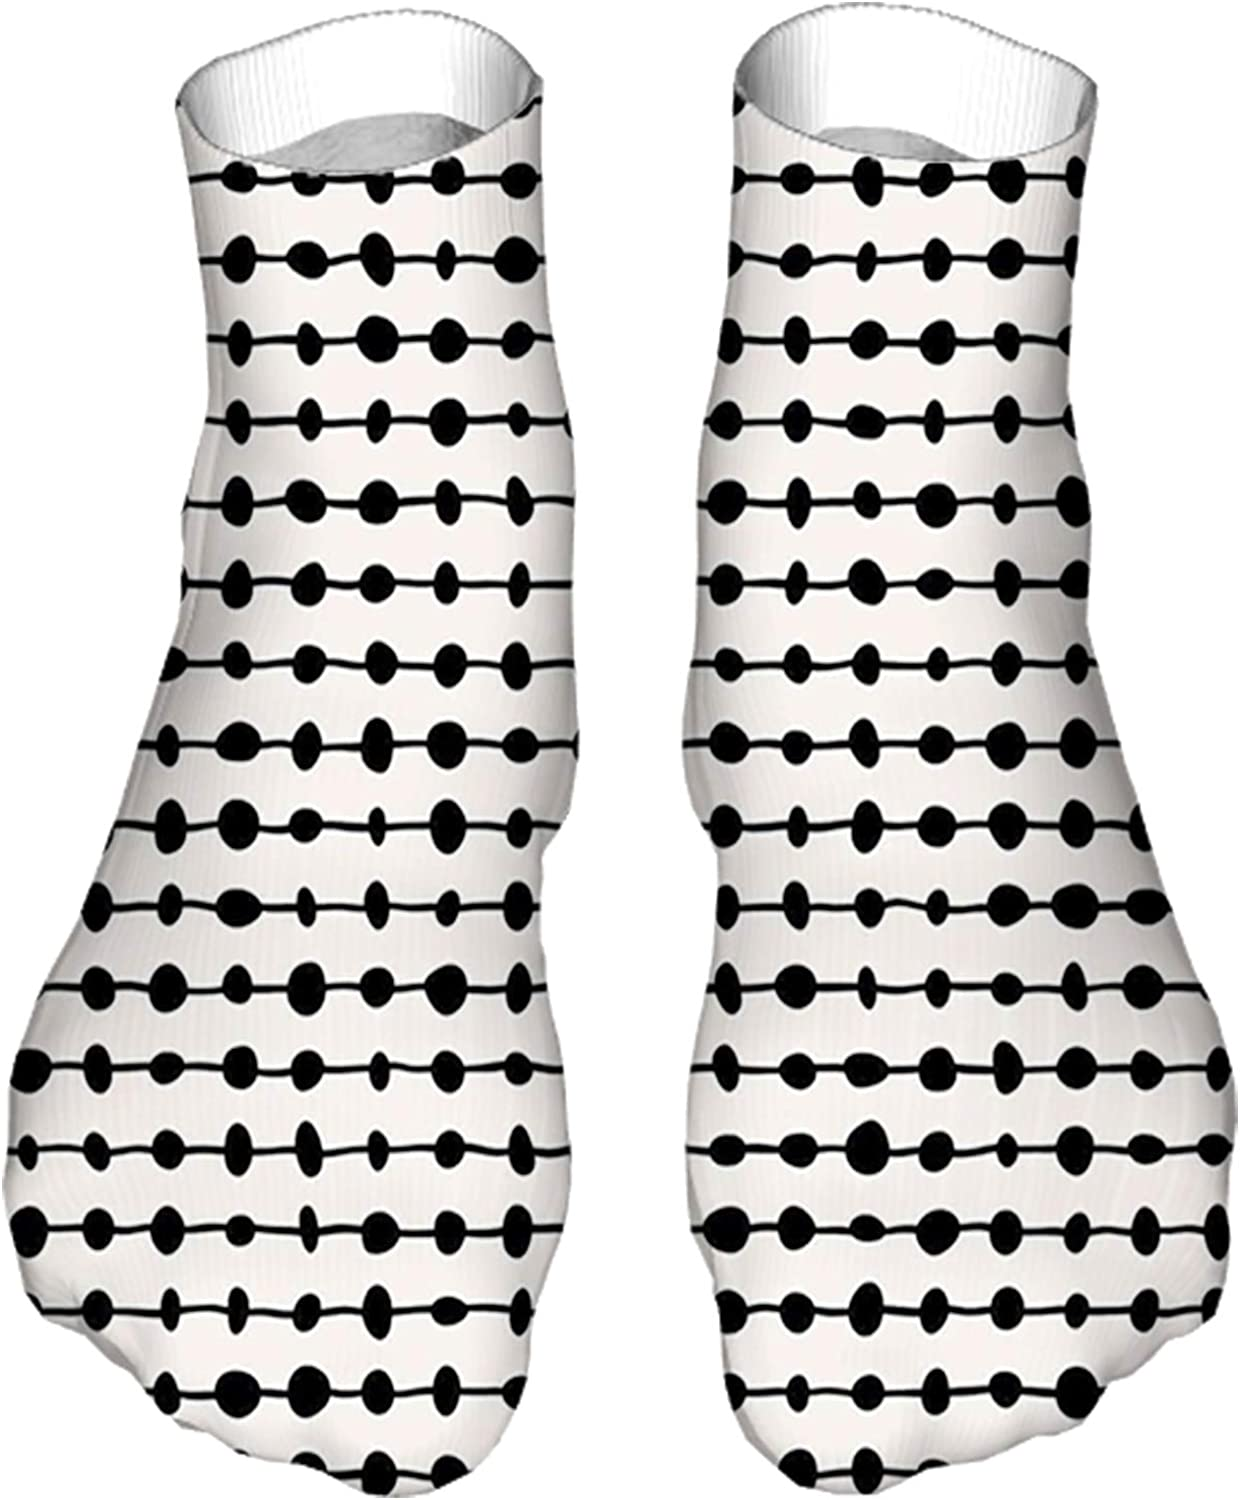 Women's Colorful Patterned Unisex Low Cut/No Show Socks,Geometric Composition of Dots on Horizontal Lines Abstract